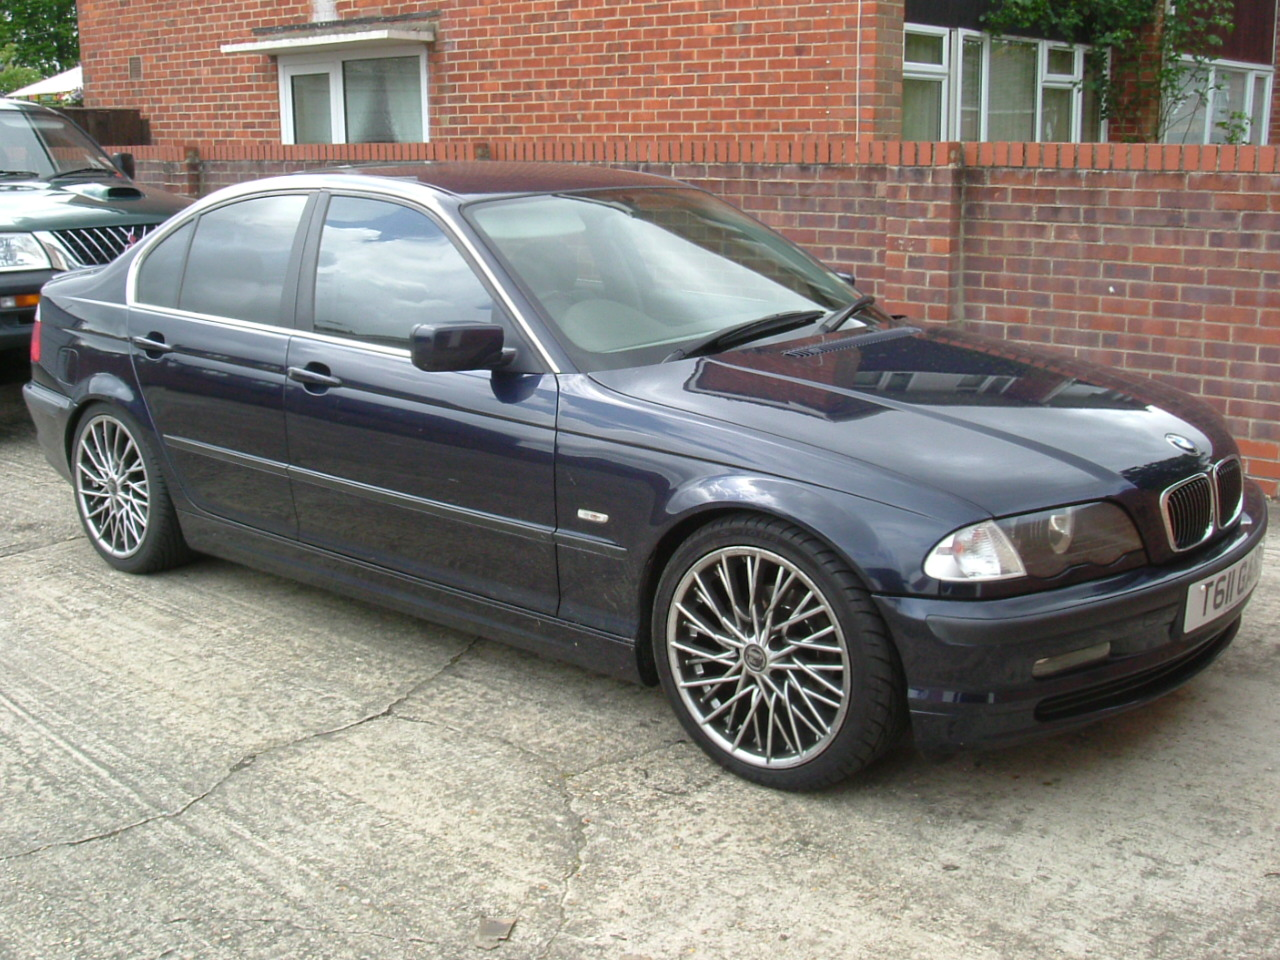 BMW 3 series 318is 2000 photo - 6